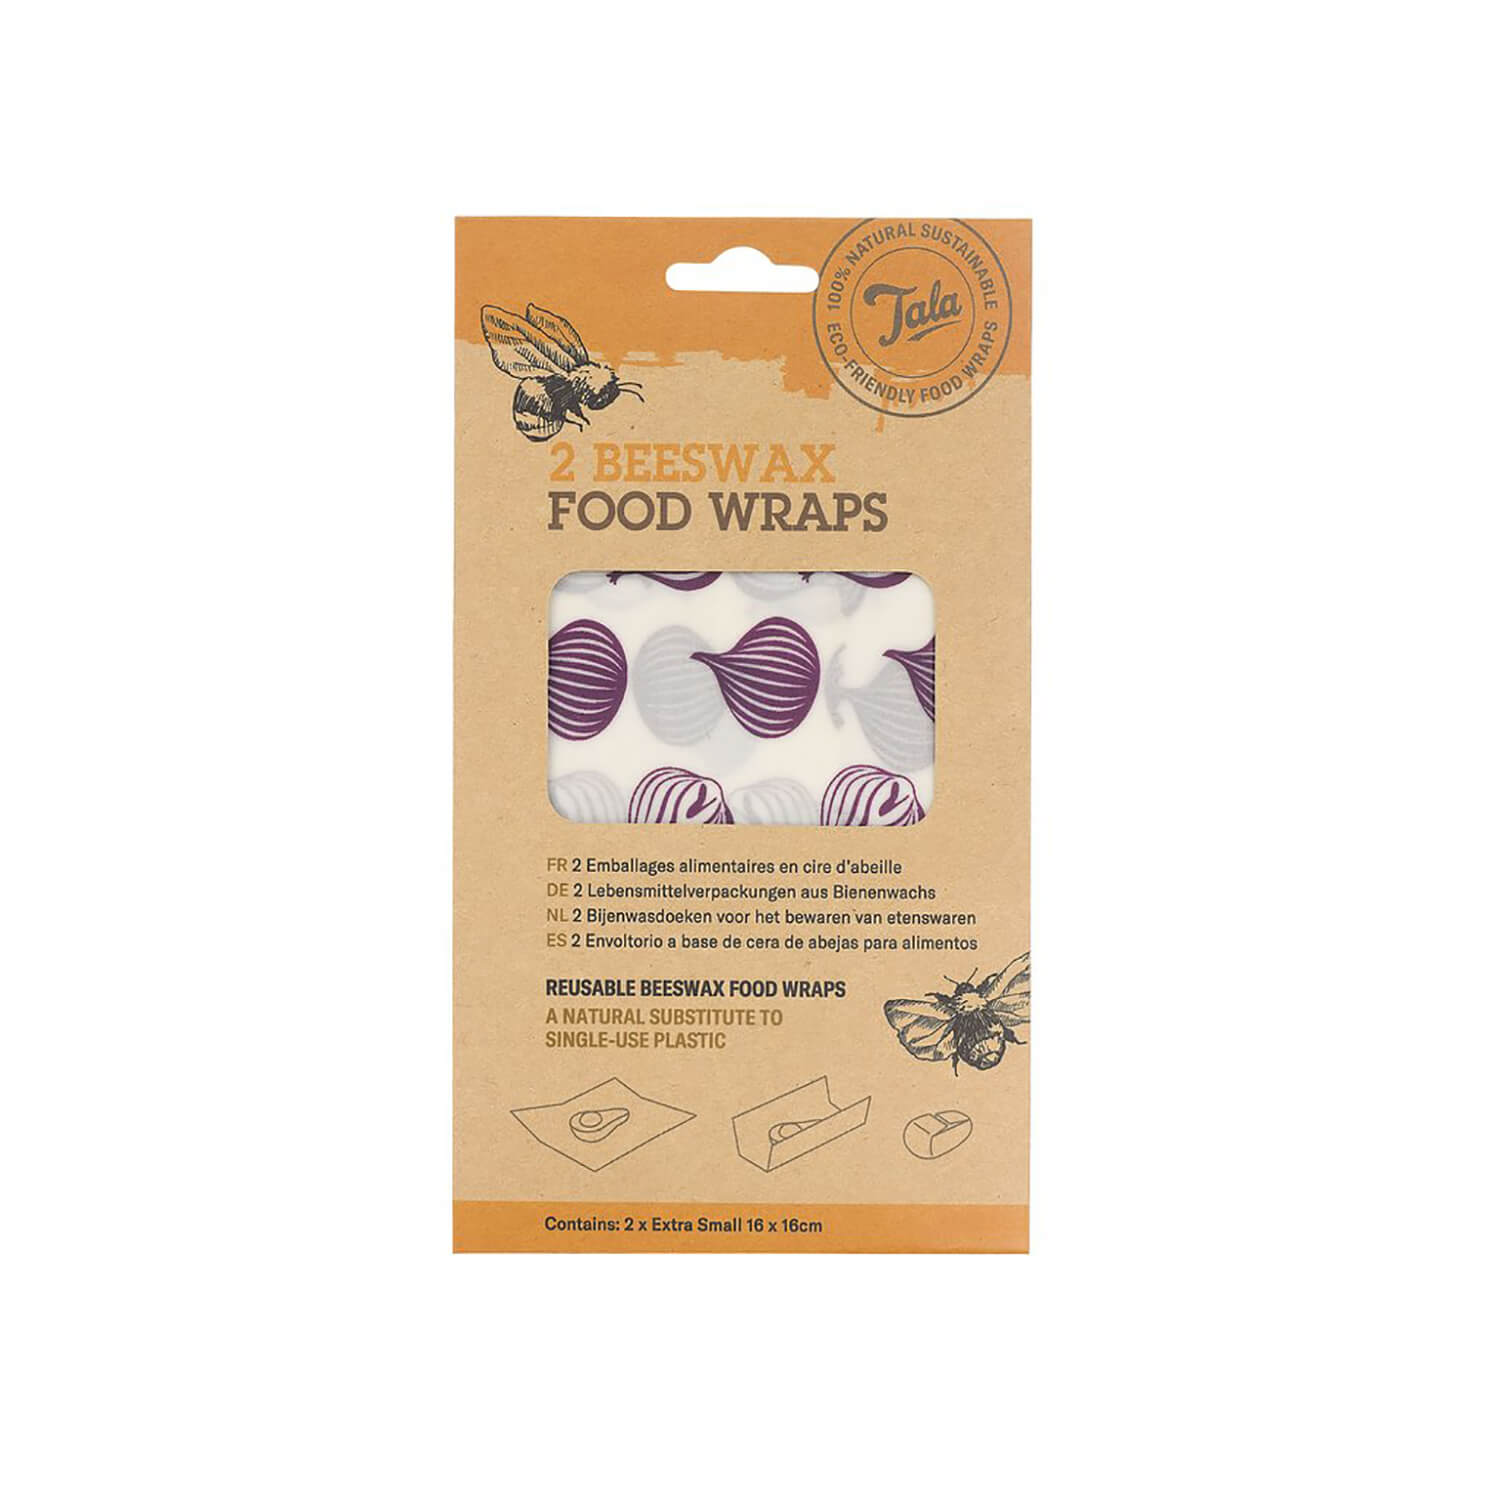 Tala 2 Onion Food Wax Wraps - 16 x 16cm